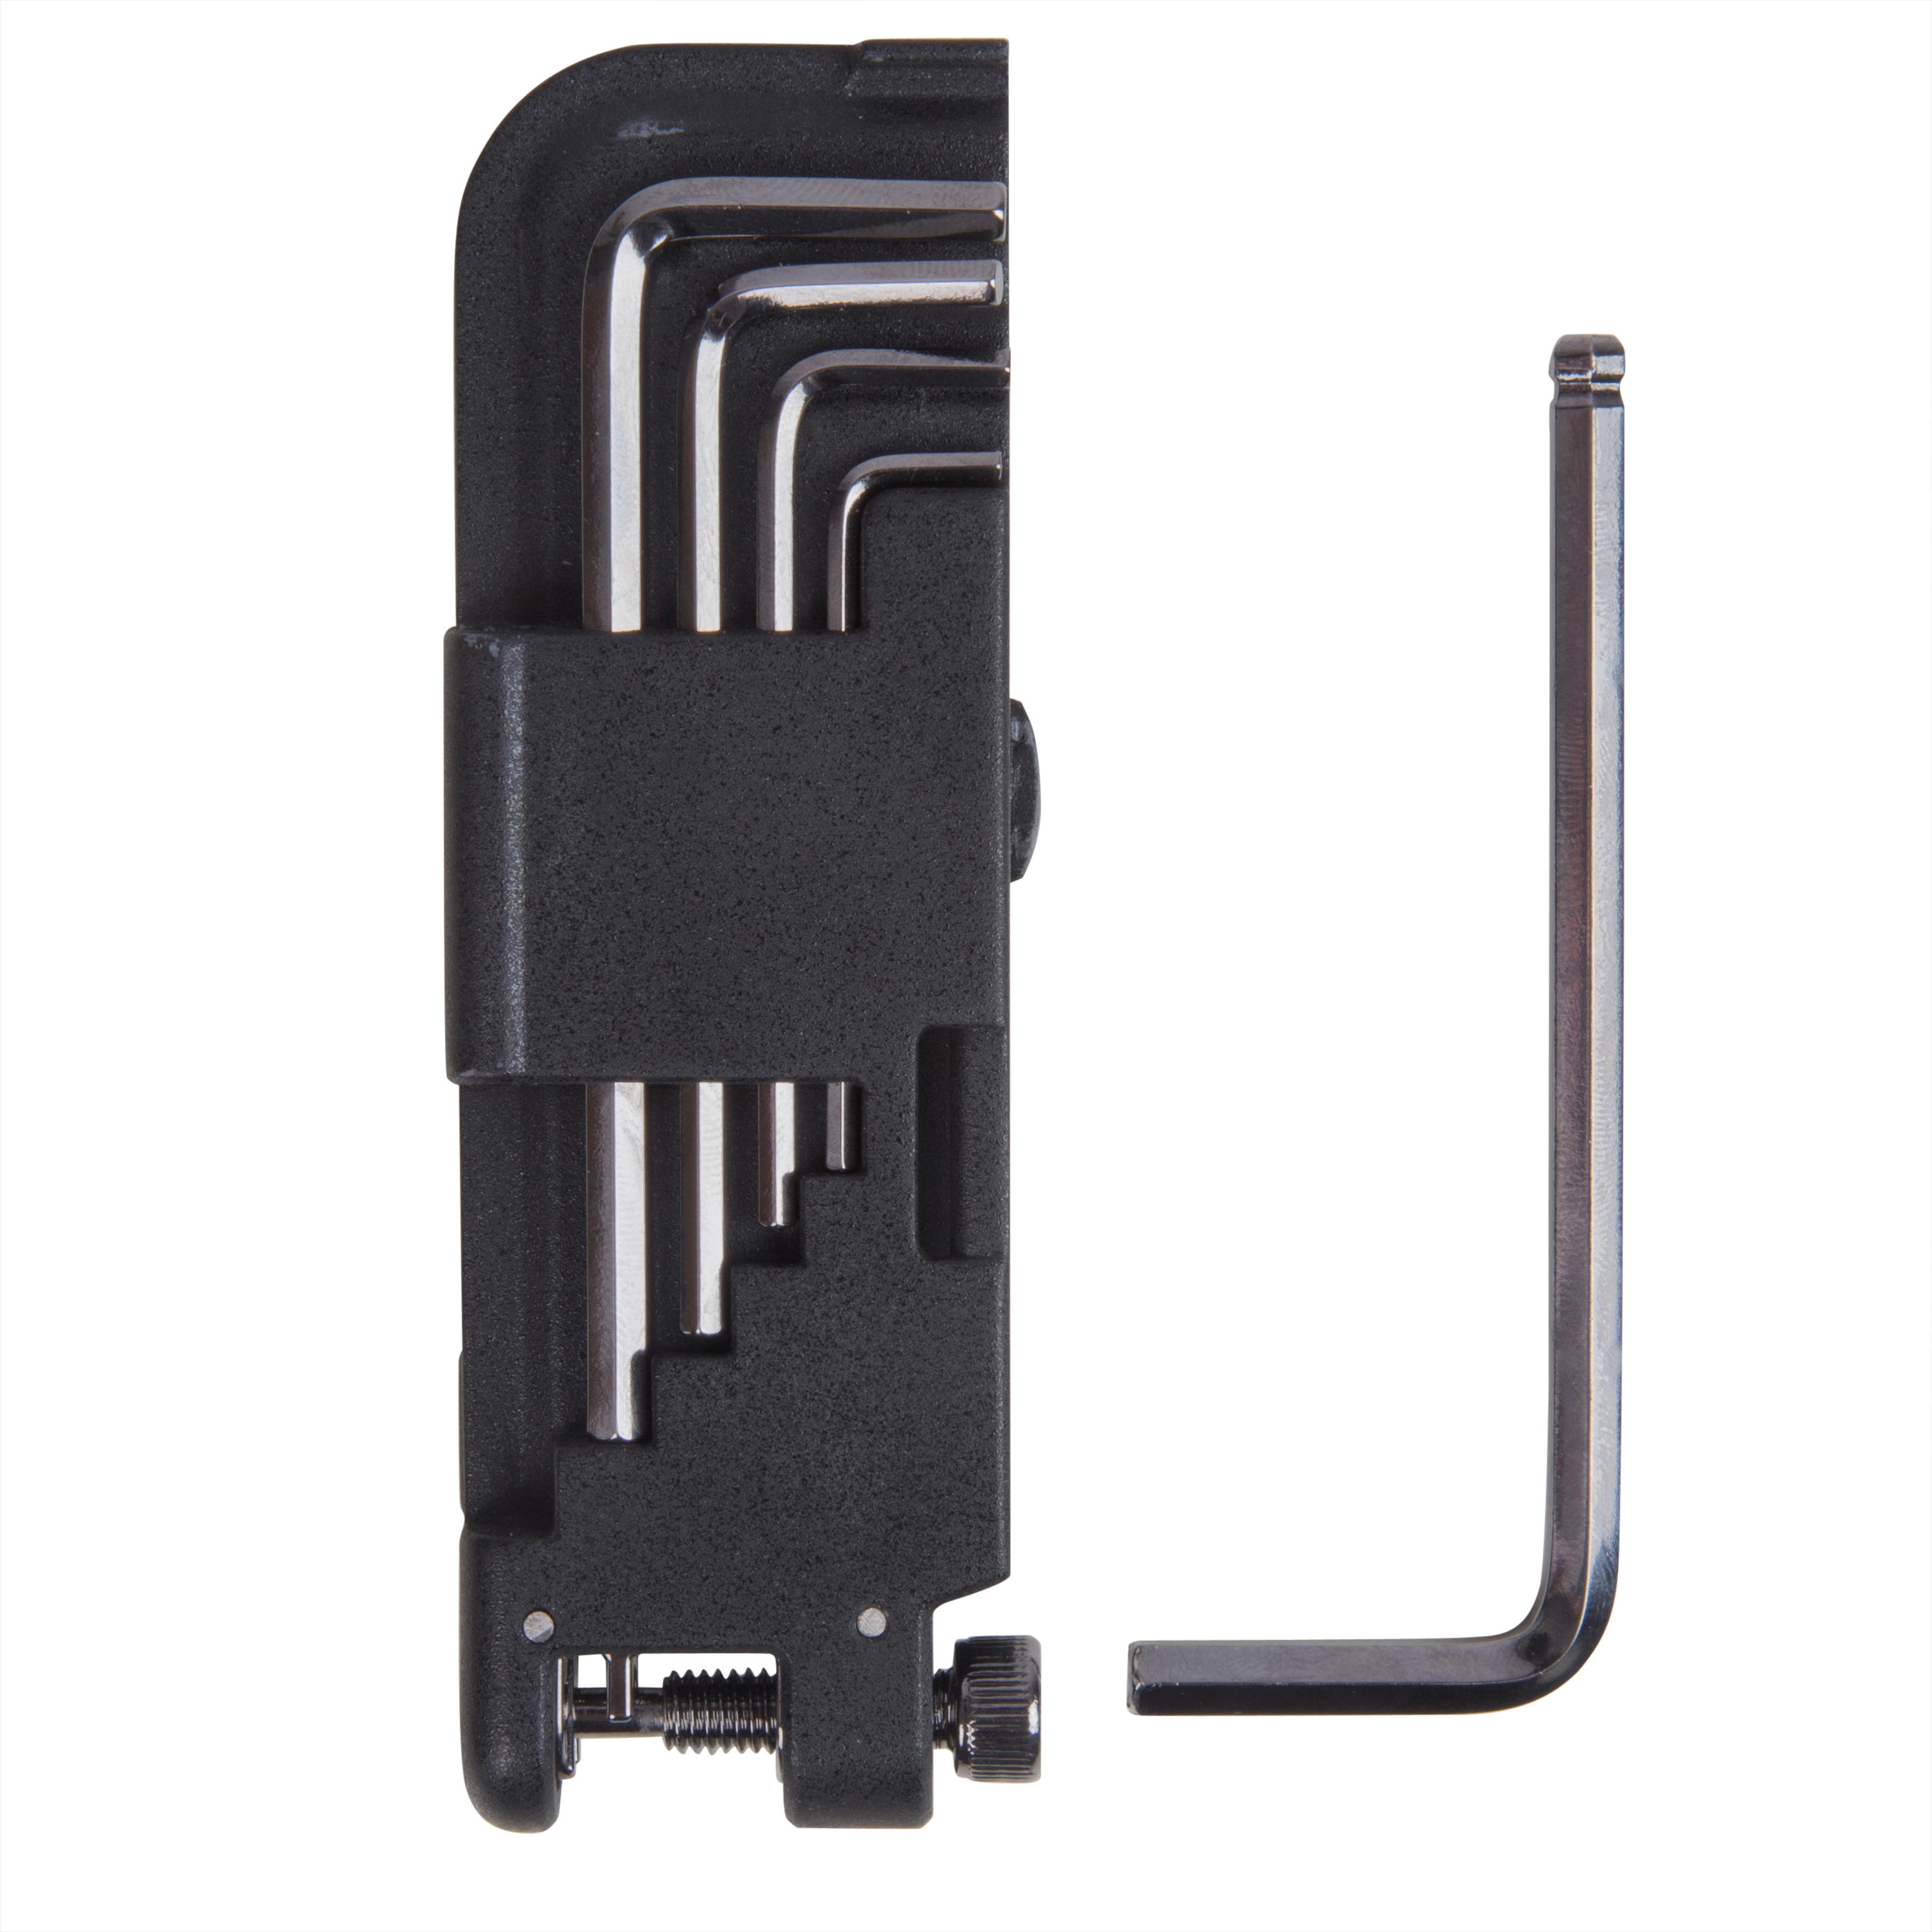 OUTIL MULTIFONCTION VÉLO MULTITOOL 920